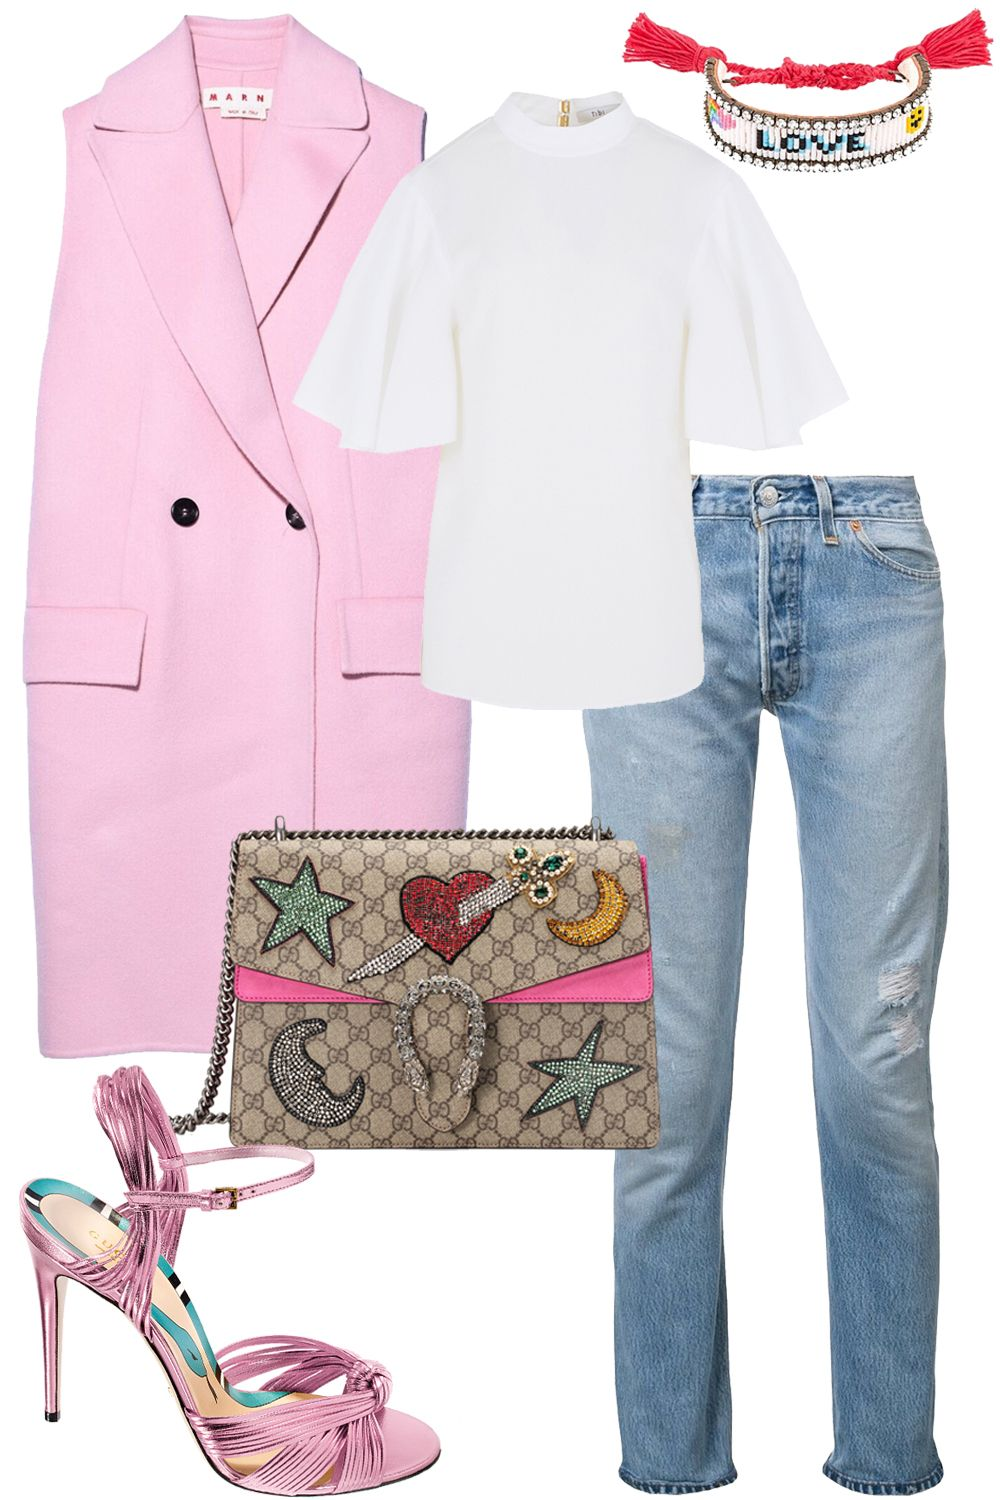 """<p>""""Pretty pastels were all over the New York runways for next season, so get a head-start on the trend by wearing this Gucci shoe with other candy-colored pieces.""""<span class=""""redactor-invisible-space"""" data-verified=""""redactor"""" data-redactor-tag=""""span"""" data-redactor-class=""""redactor-invisible-space"""">—<span class=""""redactor-invisible-space"""" data-redactor-tag=""""span"""" data-redactor-class=""""redactor-invisible-space"""" data-verified=""""redactor""""><strong data-redactor-tag=""""strong"""" data-verified=""""redactor"""">Joanna Hillman, Style Director, on her styling</strong></span><span class=""""redactor-invisible-space"""" data-verified=""""redactor"""" data-redactor-tag=""""span"""" data-redactor-class=""""redactor-invisible-space""""></span></span></p><p><span class=""""redactor-invisible-space"""" data-verified=""""redactor"""" data-redactor-tag=""""span"""" data-redactor-class=""""redactor-invisible-space""""><span class=""""redactor-invisible-space"""" data-redactor-tag=""""span"""" data-redactor-class=""""redactor-invisible-space"""" data-verified=""""redactor""""><strong data-redactor-tag=""""strong"""" data-verified=""""redactor""""><br></strong></span></span></p><p><span class=""""redactor-invisible-space"""" data-verified=""""redactor"""" data-redactor-tag=""""span"""" data-redactor-class=""""redactor-invisible-space""""><span class=""""redactor-invisible-space"""" data-verified=""""redactor"""" data-redactor-tag=""""span"""" data-redactor-class=""""redactor-invisible-space""""><em data-redactor-tag=""""em"""" data-verified=""""redactor""""><strong data-redactor-tag=""""strong"""" data-verified=""""redactor"""">Gucci</strong>sandal, $795,<strong data-redactor-tag=""""strong"""" data-verified=""""redactor""""><a href=""""https://shop.harpersbazaar.com/g/gucci/allies-high-sandal-9825.html"""" target=""""_blank"""">shopBAZAAR.com</a></strong>;</em><span class=""""redactor-invisible-space"""" data-verified=""""redactor"""" data-redactor-tag=""""span"""" data-redactor-class=""""redactor-invisible-space""""><em data-redactor-tag=""""em"""" data-verified=""""redactor""""> <strong data-redactor-tag=""""strong"""" data-verified=""""redactor"""">Marni</strong> waistcoat, $2,250, <strong data-redactor-tag=""""strong"""" da"""